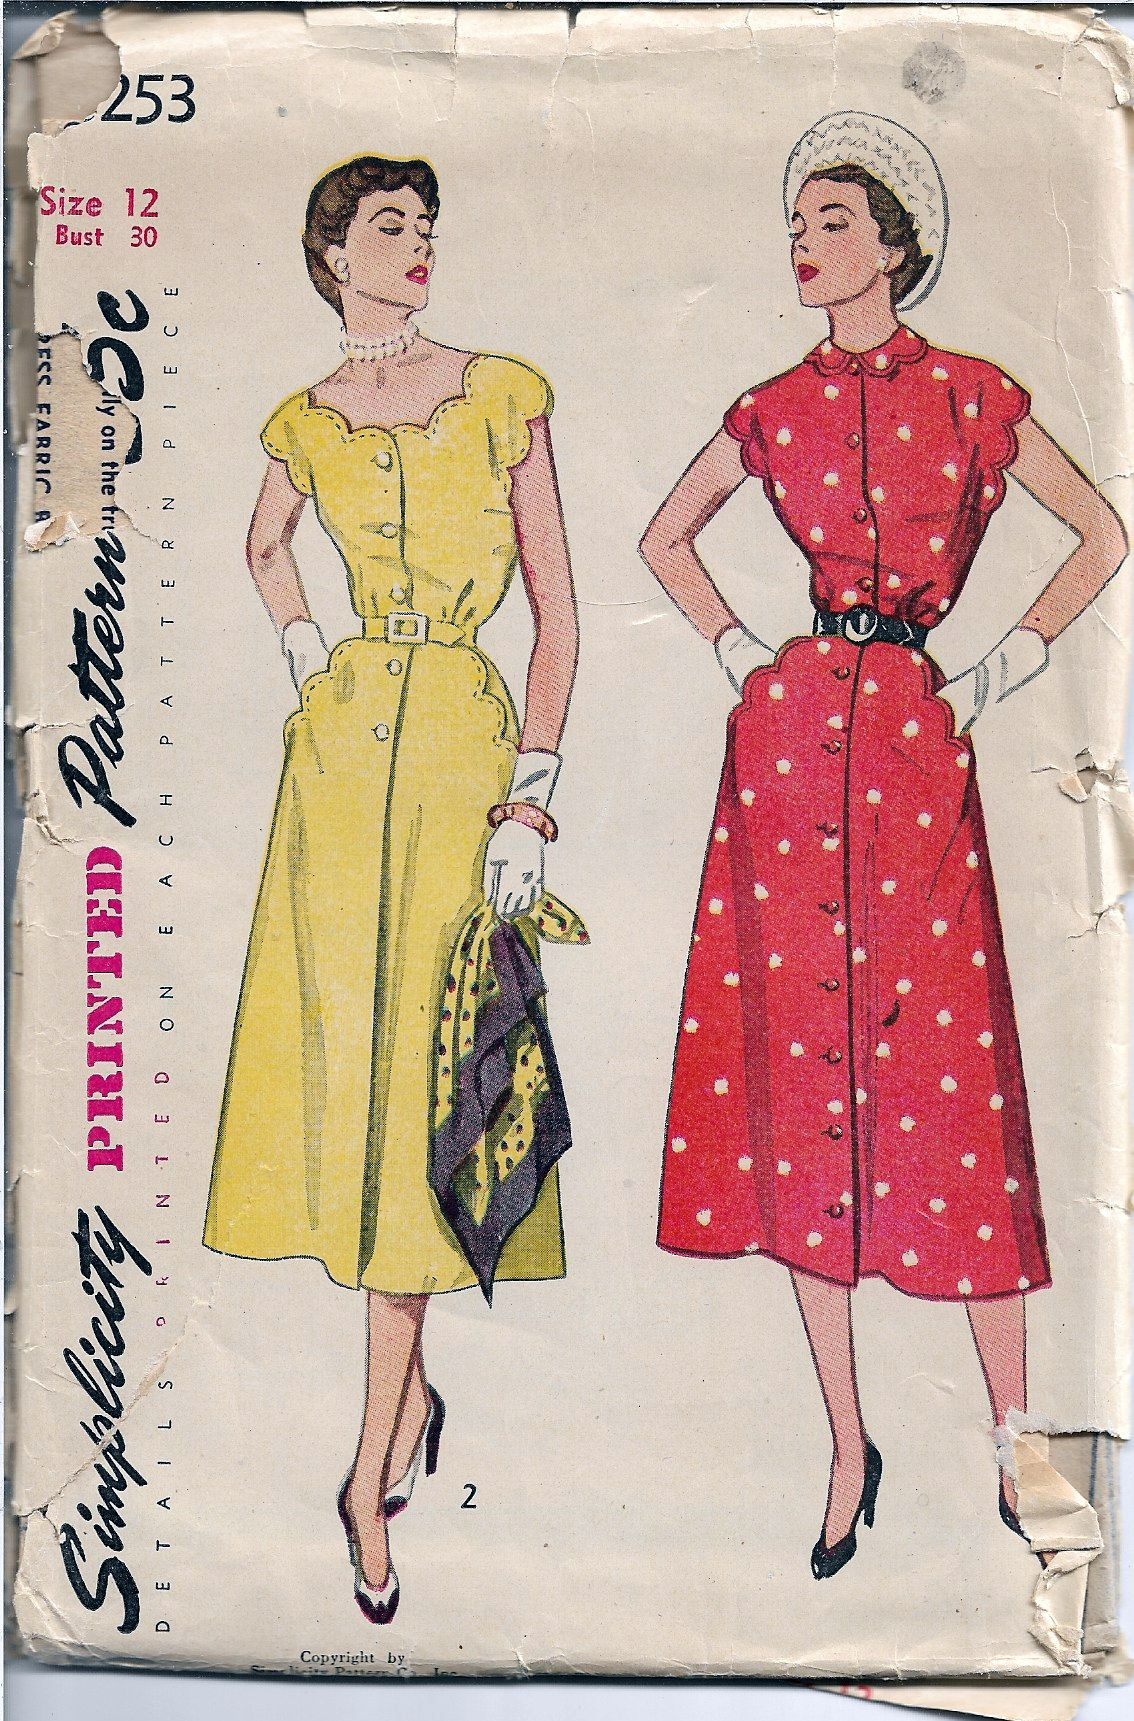 Simplicity 3253 Ladies Scalloped Buttoned Dress Vintage Sewing Pattern 1950s - VintageStitching - Vintage Sewing Patterns